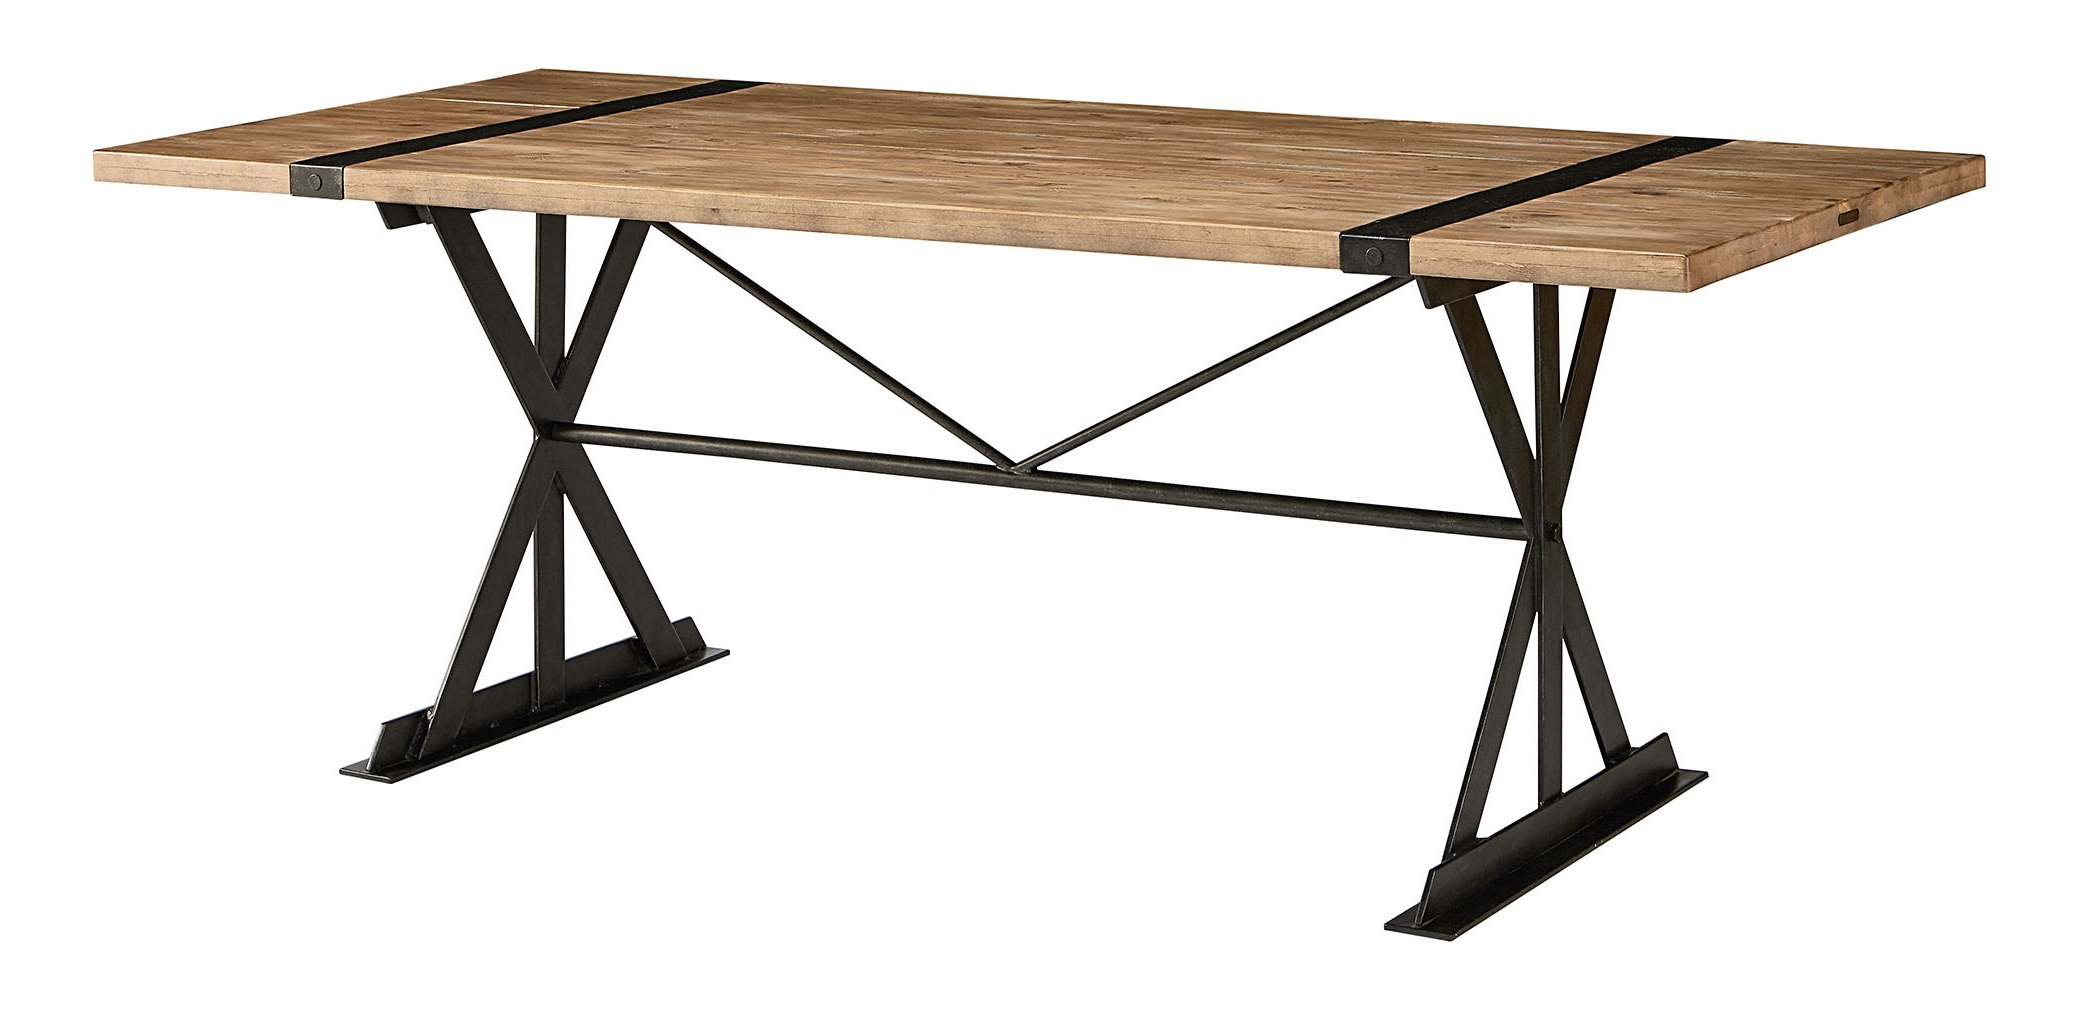 Magnolia Home Sawbuck Dining Tables With 2017 Magnolia Truss & Strap Dining Table – Urban Silo Market (View 15 of 25)